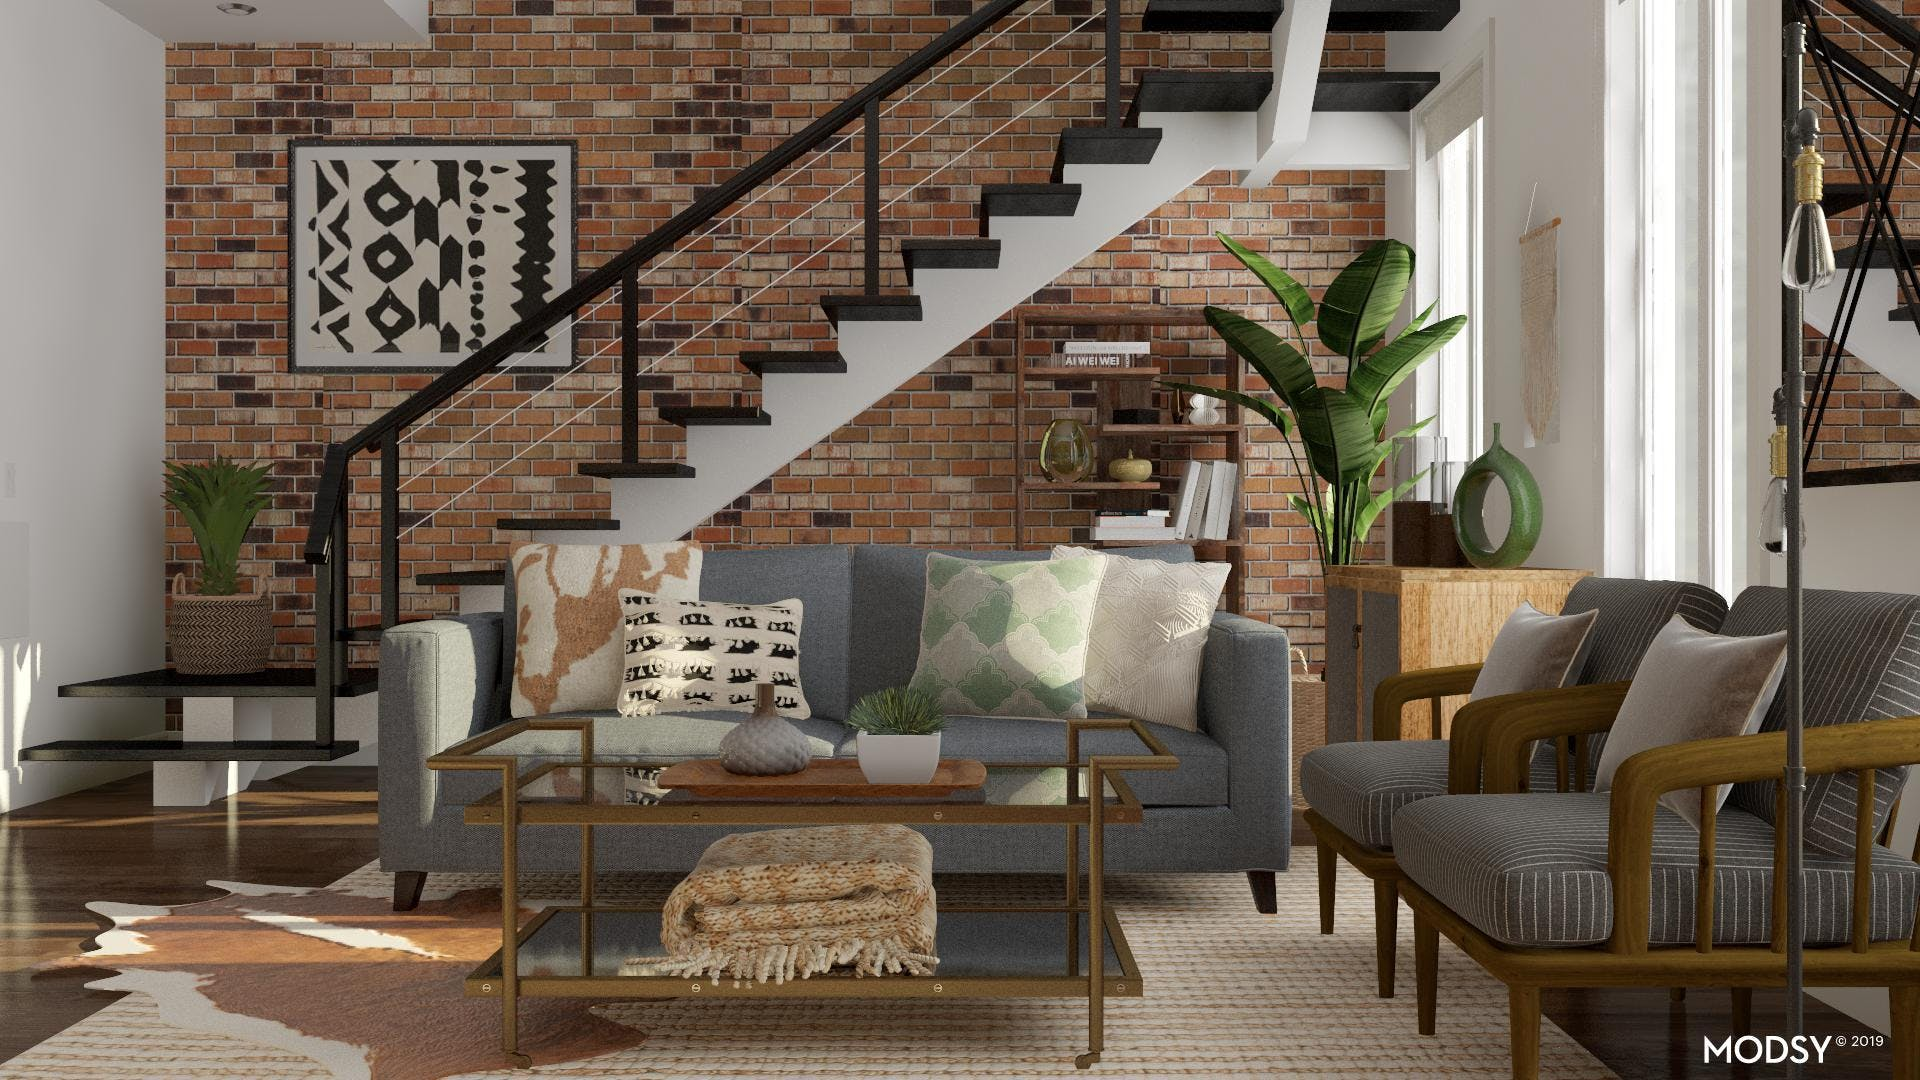 Industrial Living Room Full of Character